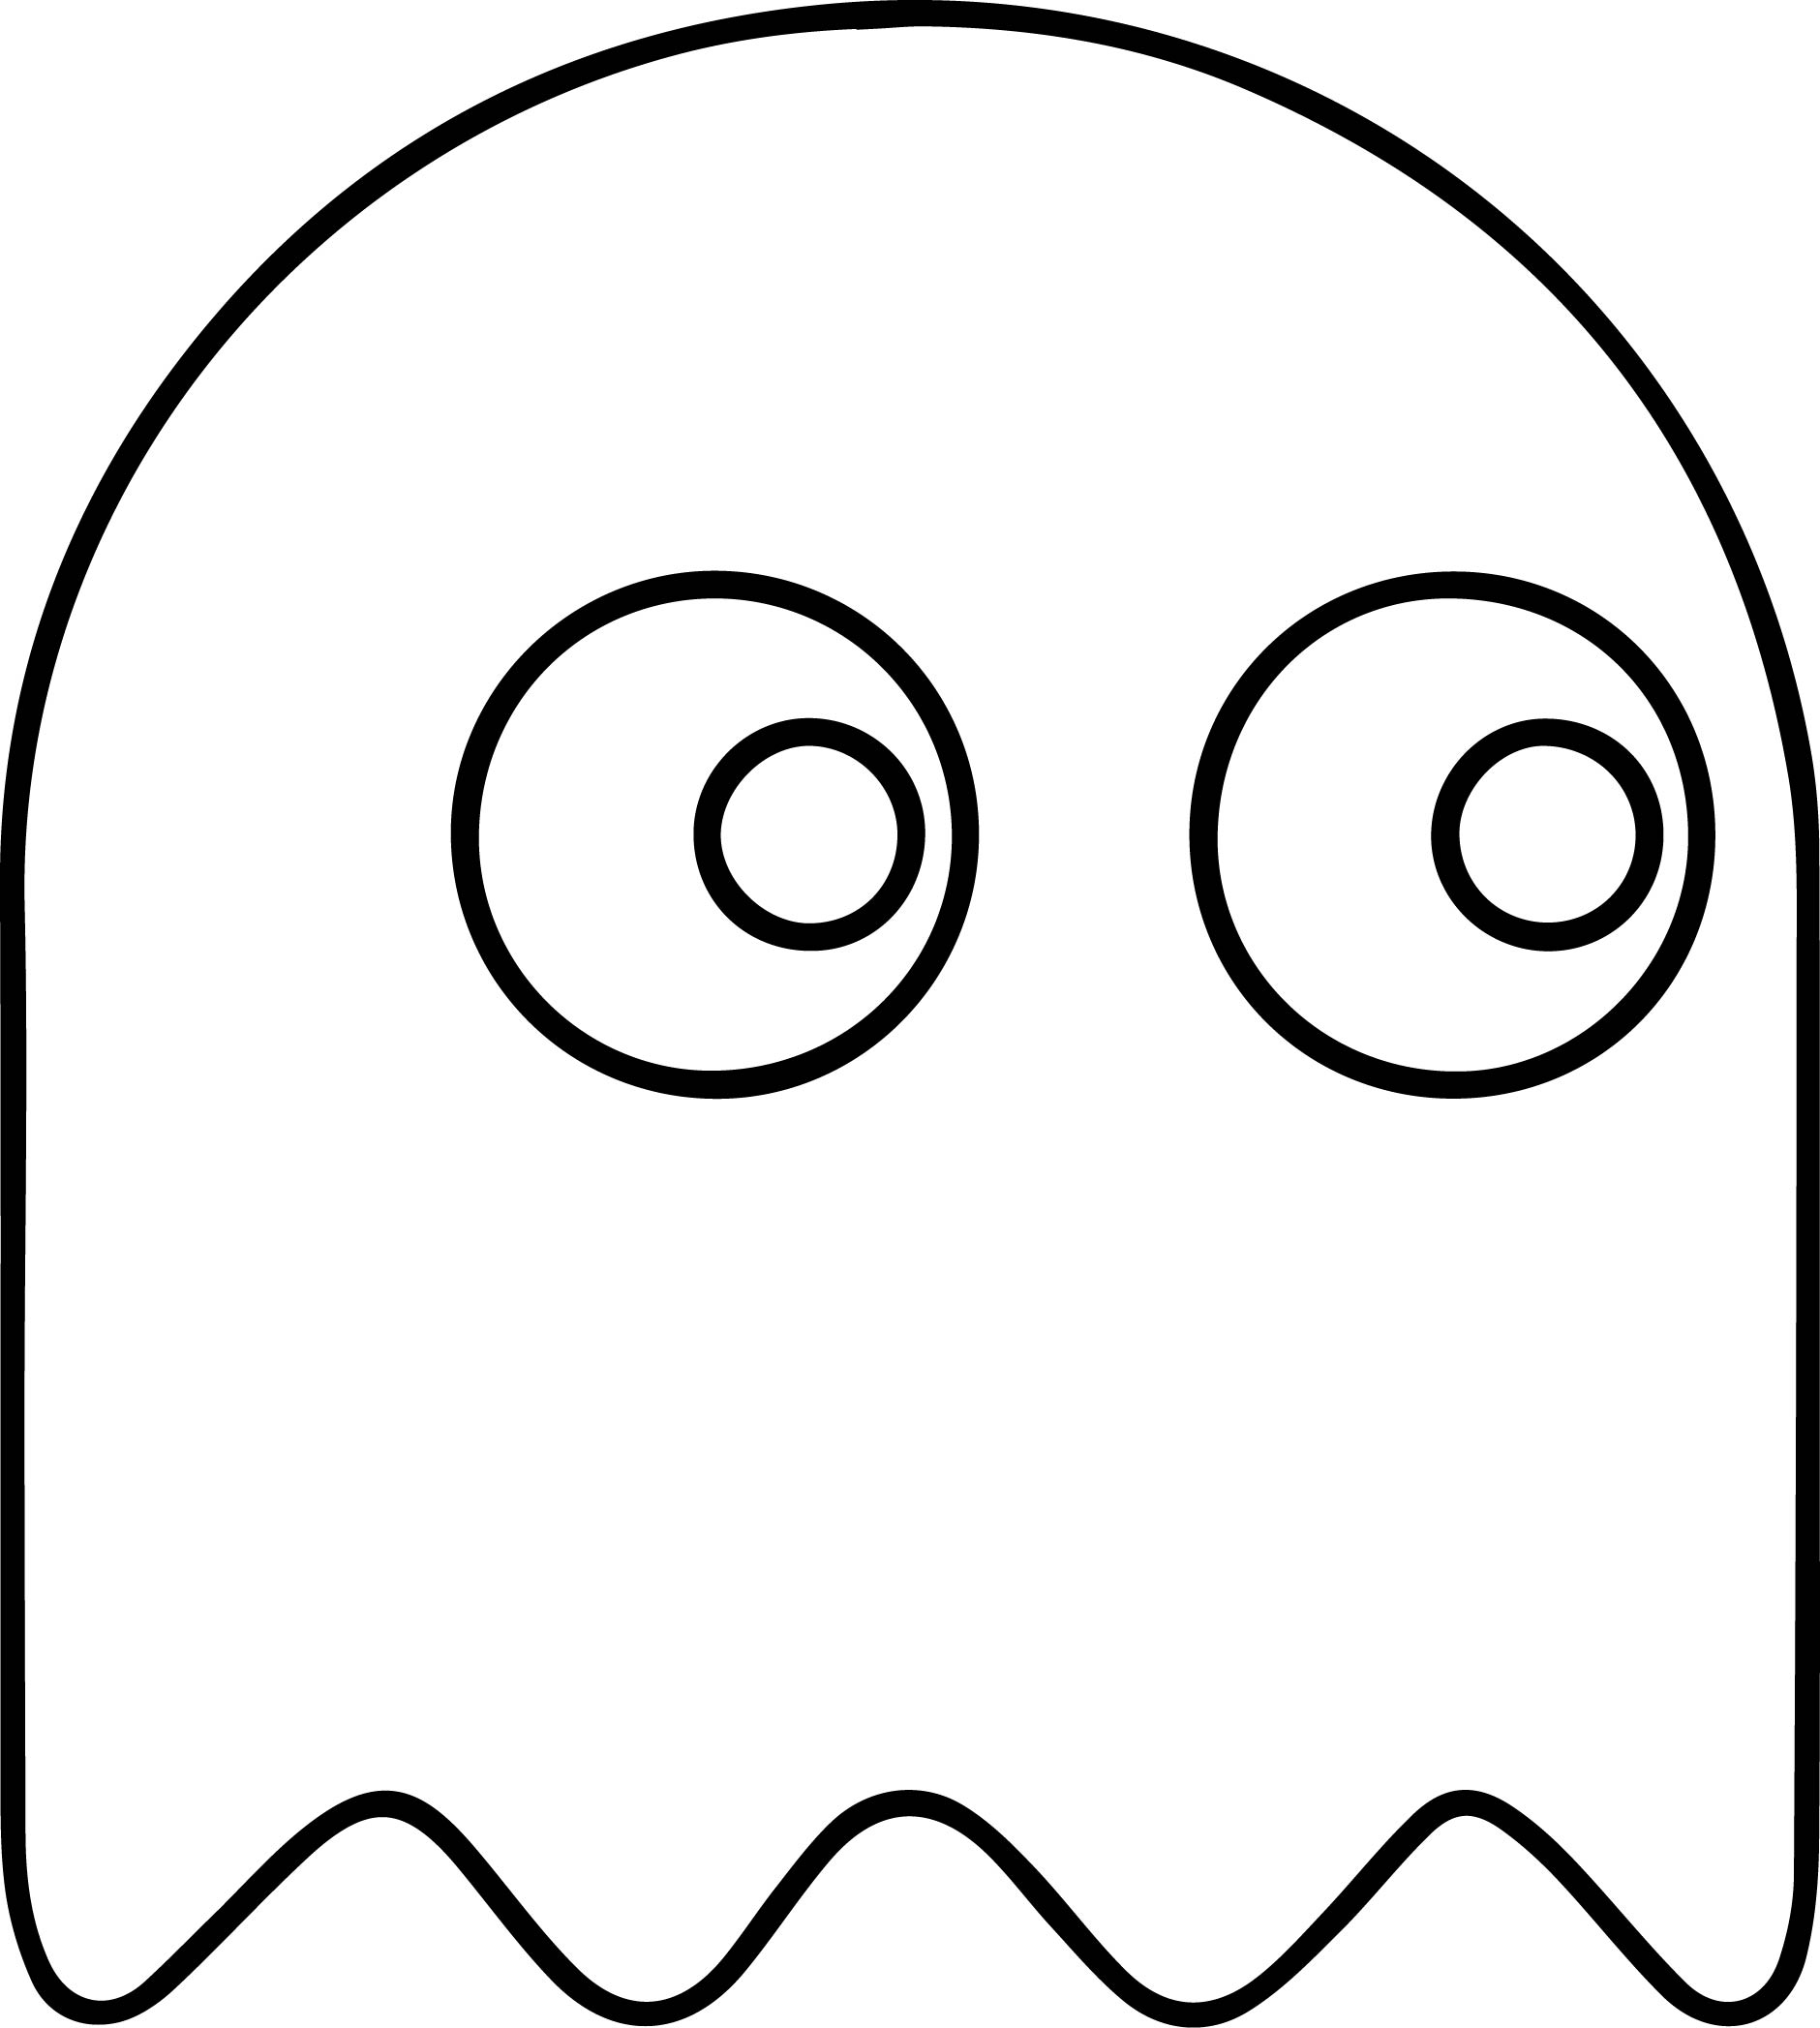 Ghost Line Drawing at GetDrawings com | Free for personal